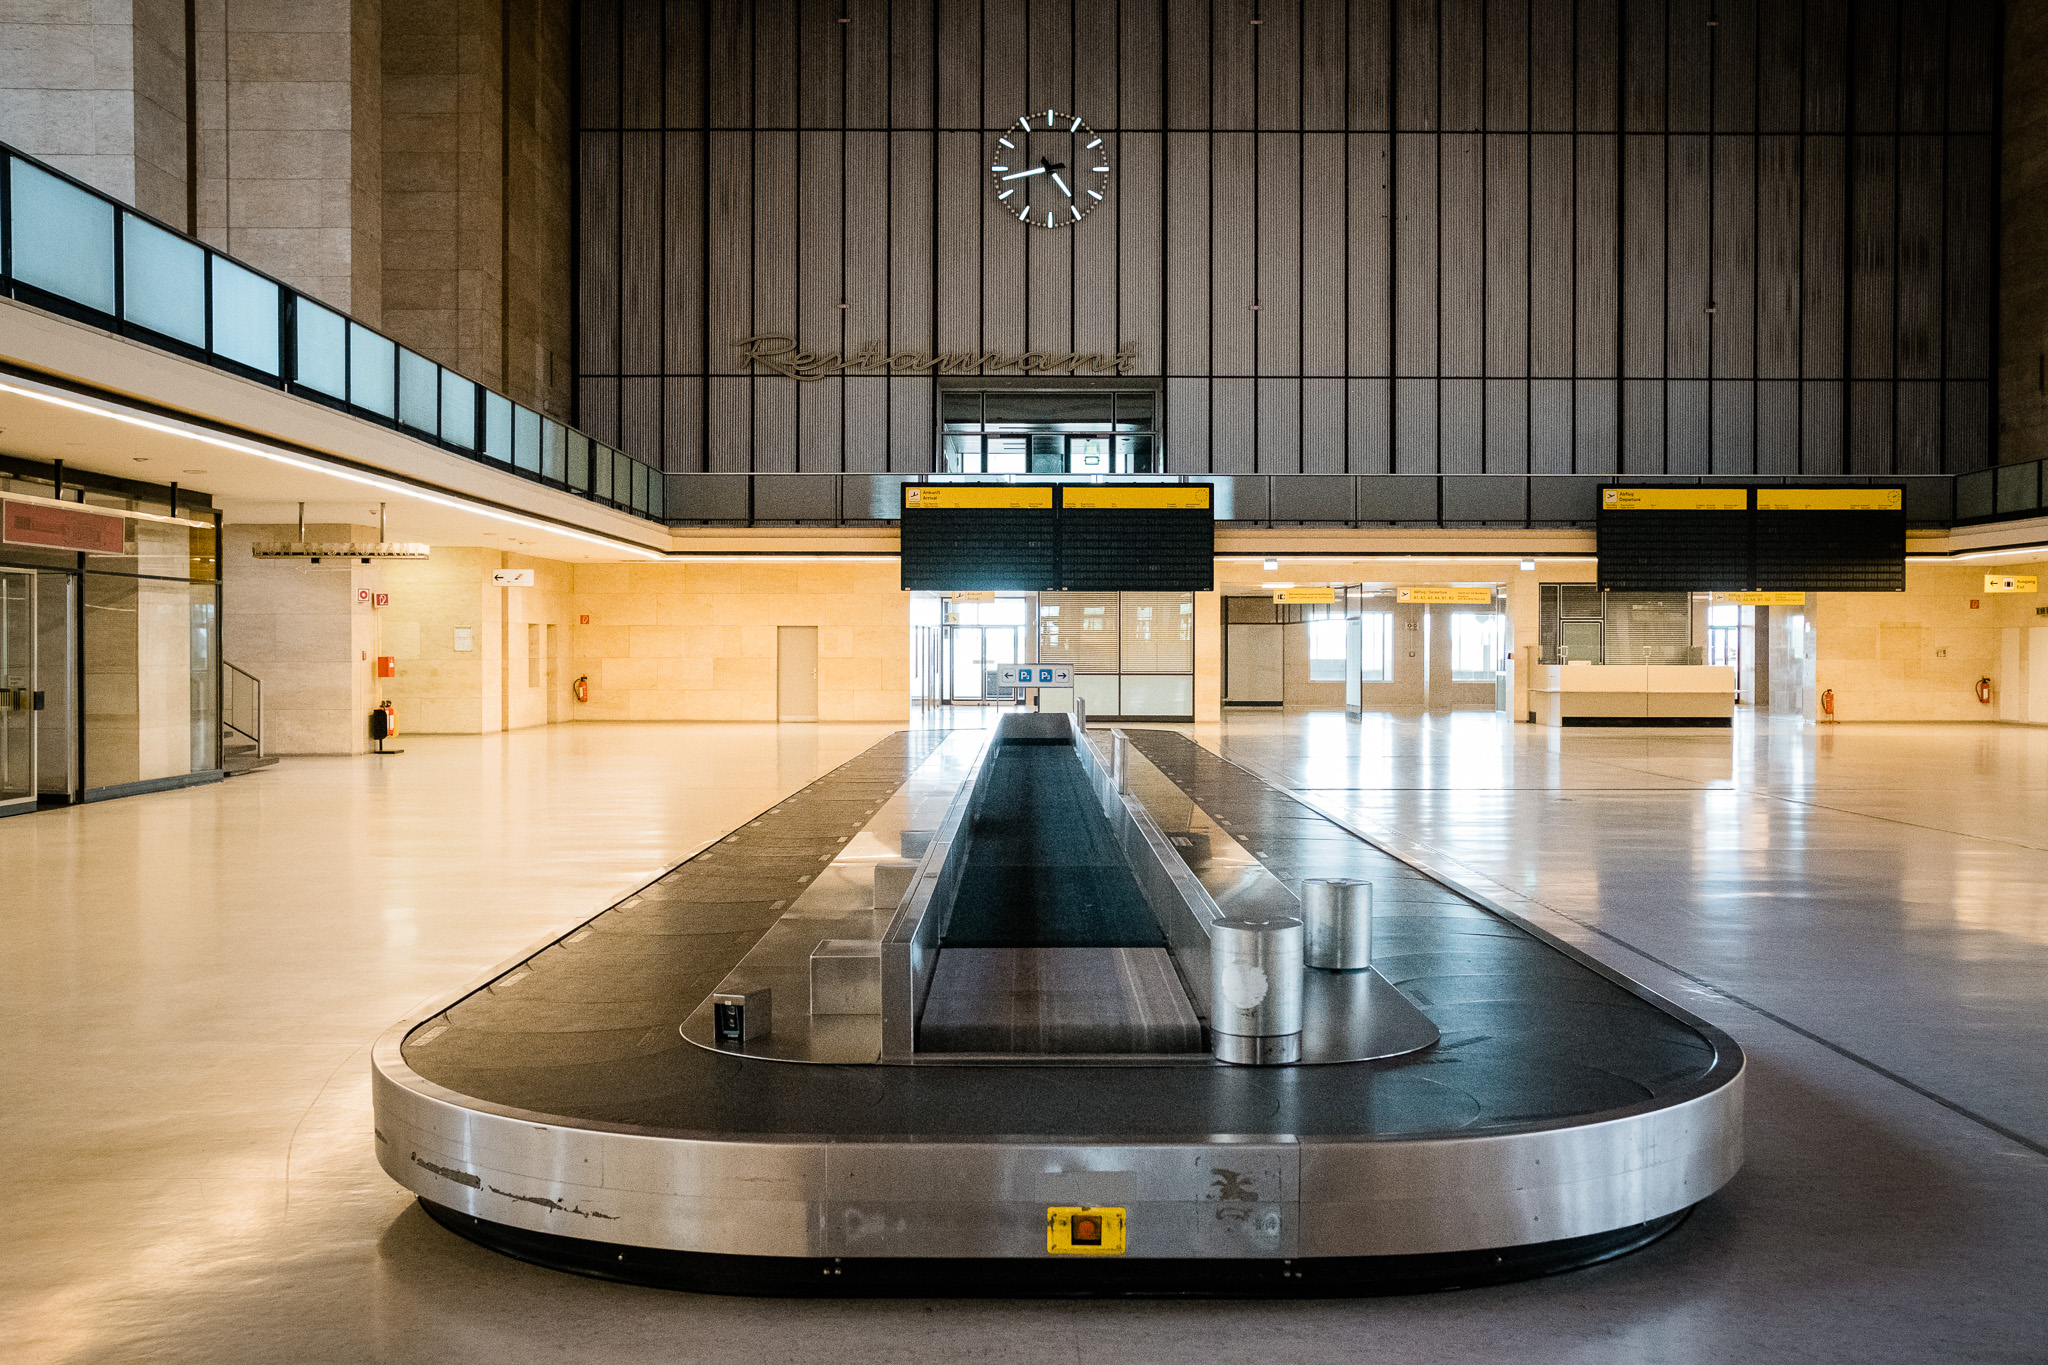 The baggage carousel in the main hall.